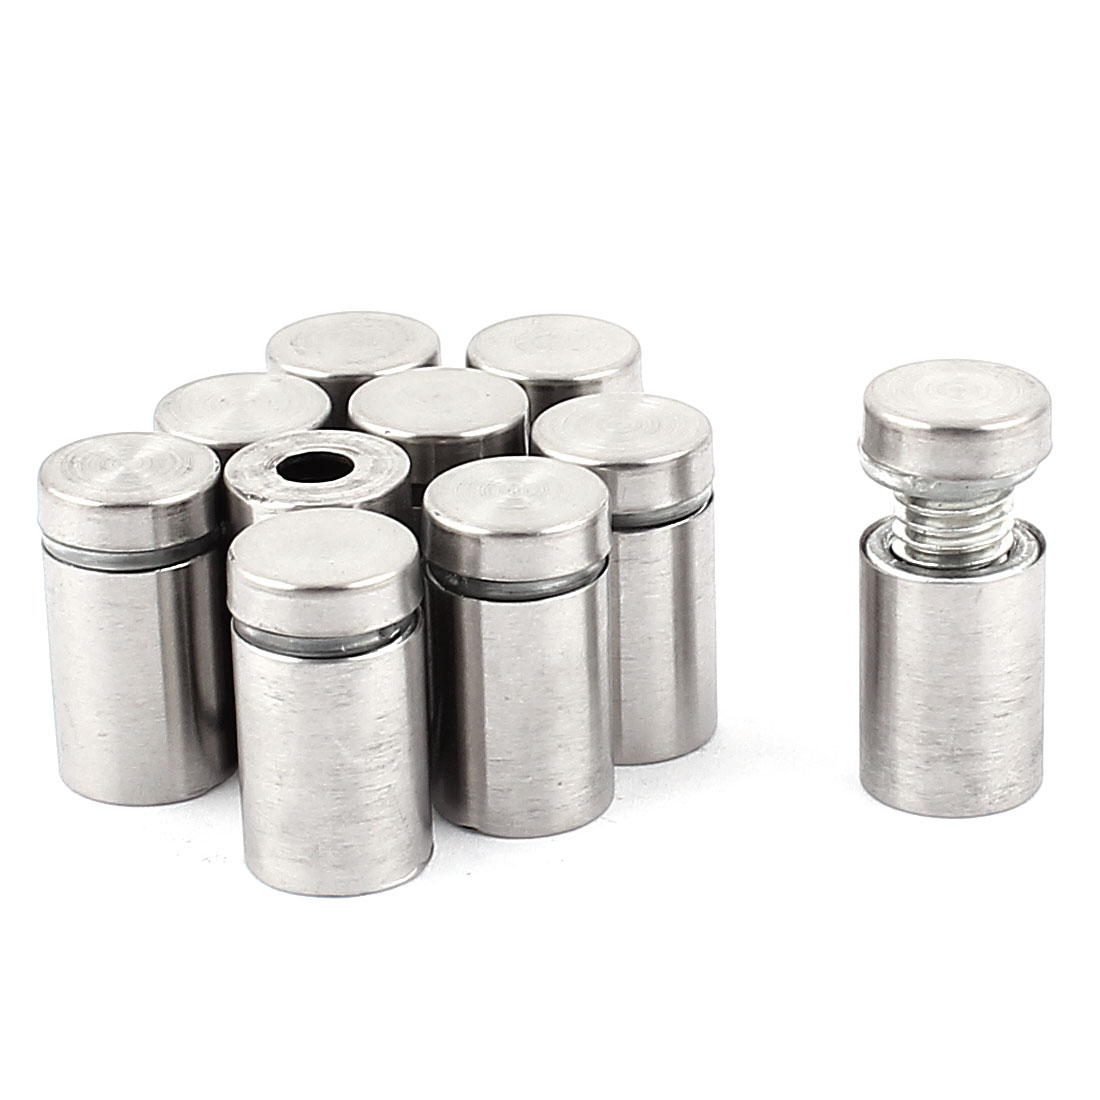 12mm x 22mm Silver Tone Metal Advertising Nail Glass Standoff Hardware 10 Pcs